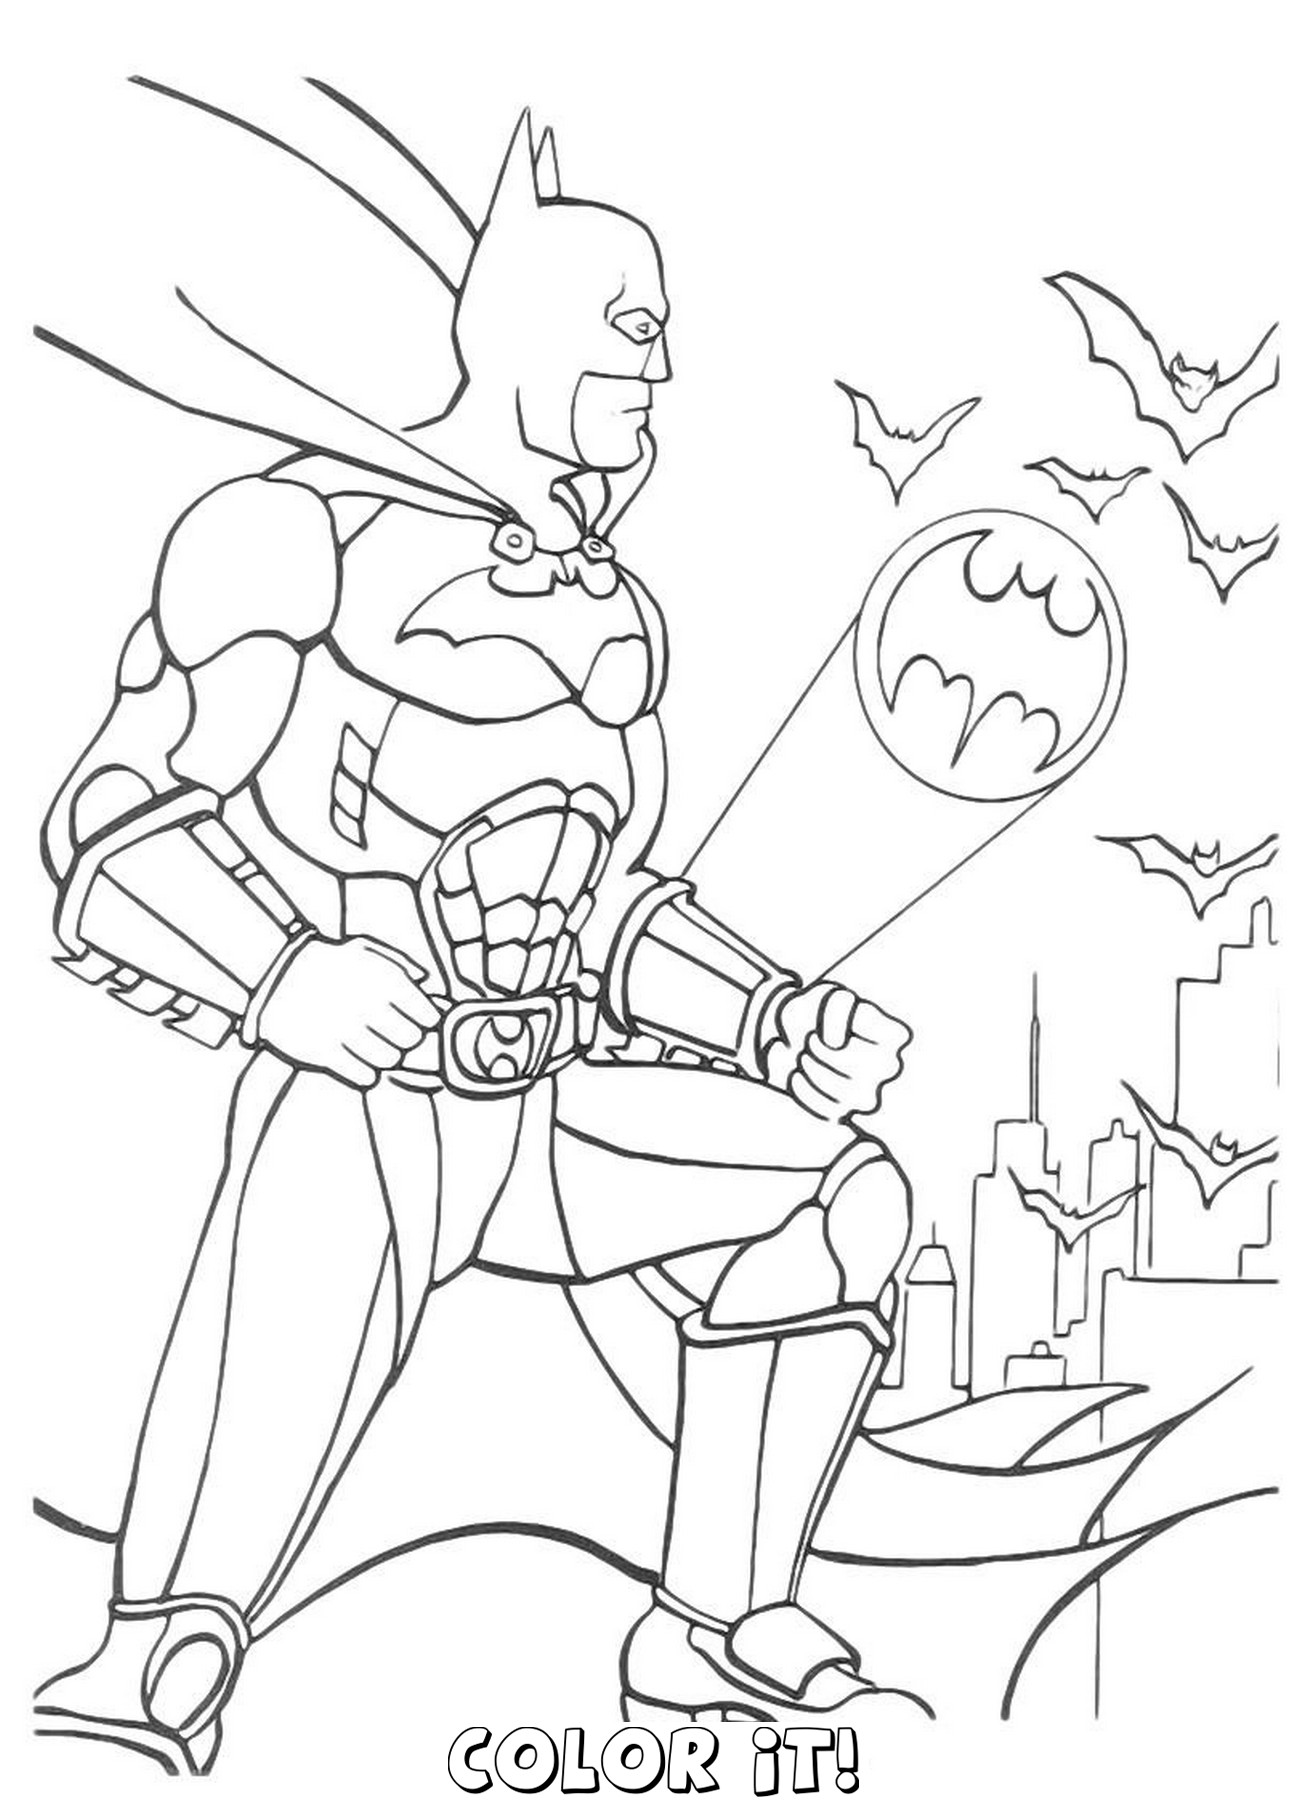 batman and robin pictures to color batman and robin coloring pages pictures batman robin color to and